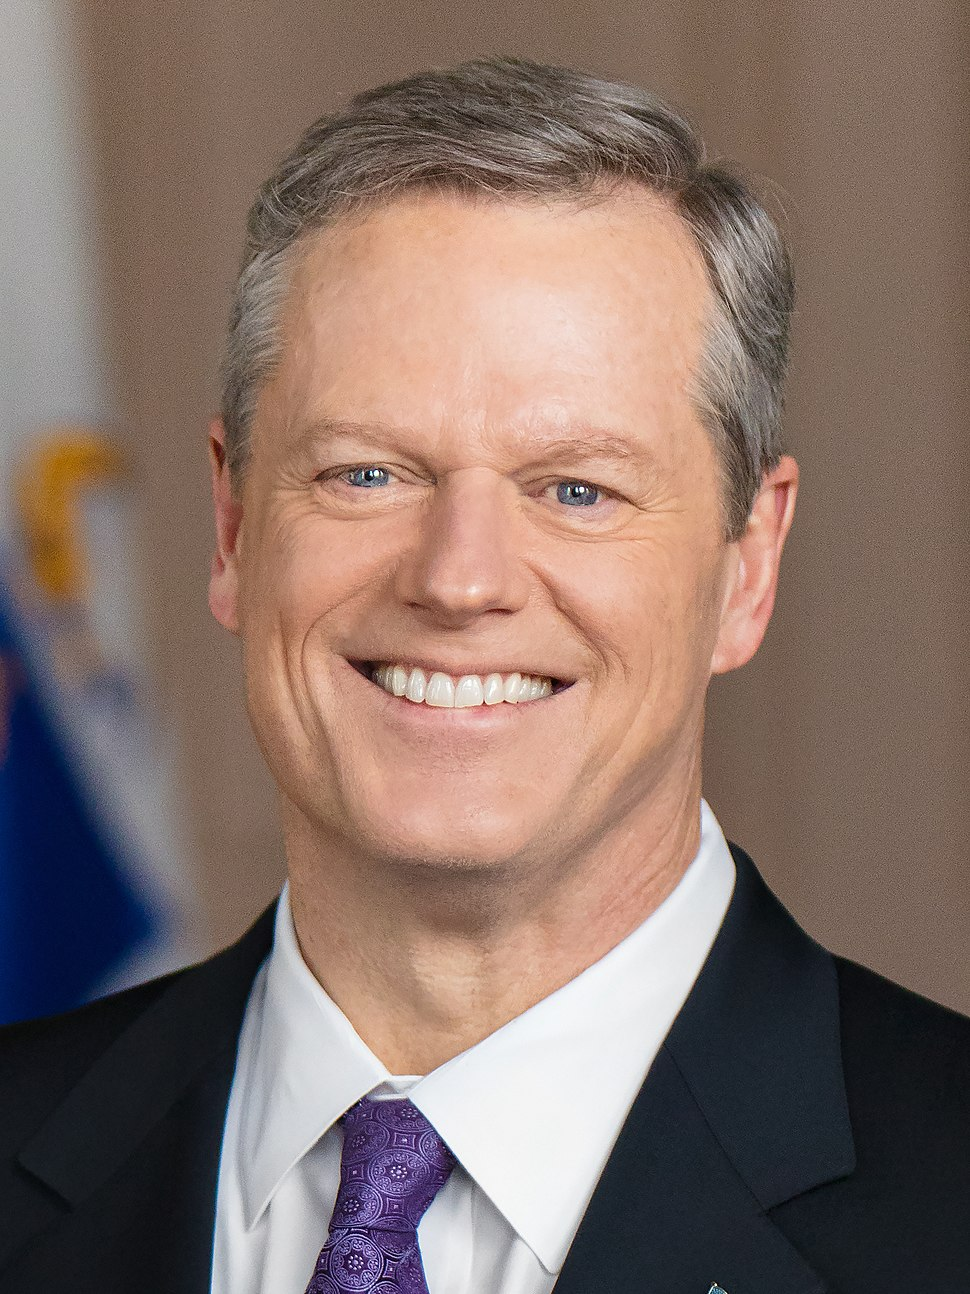 Charlie Baker official photo (cropped)